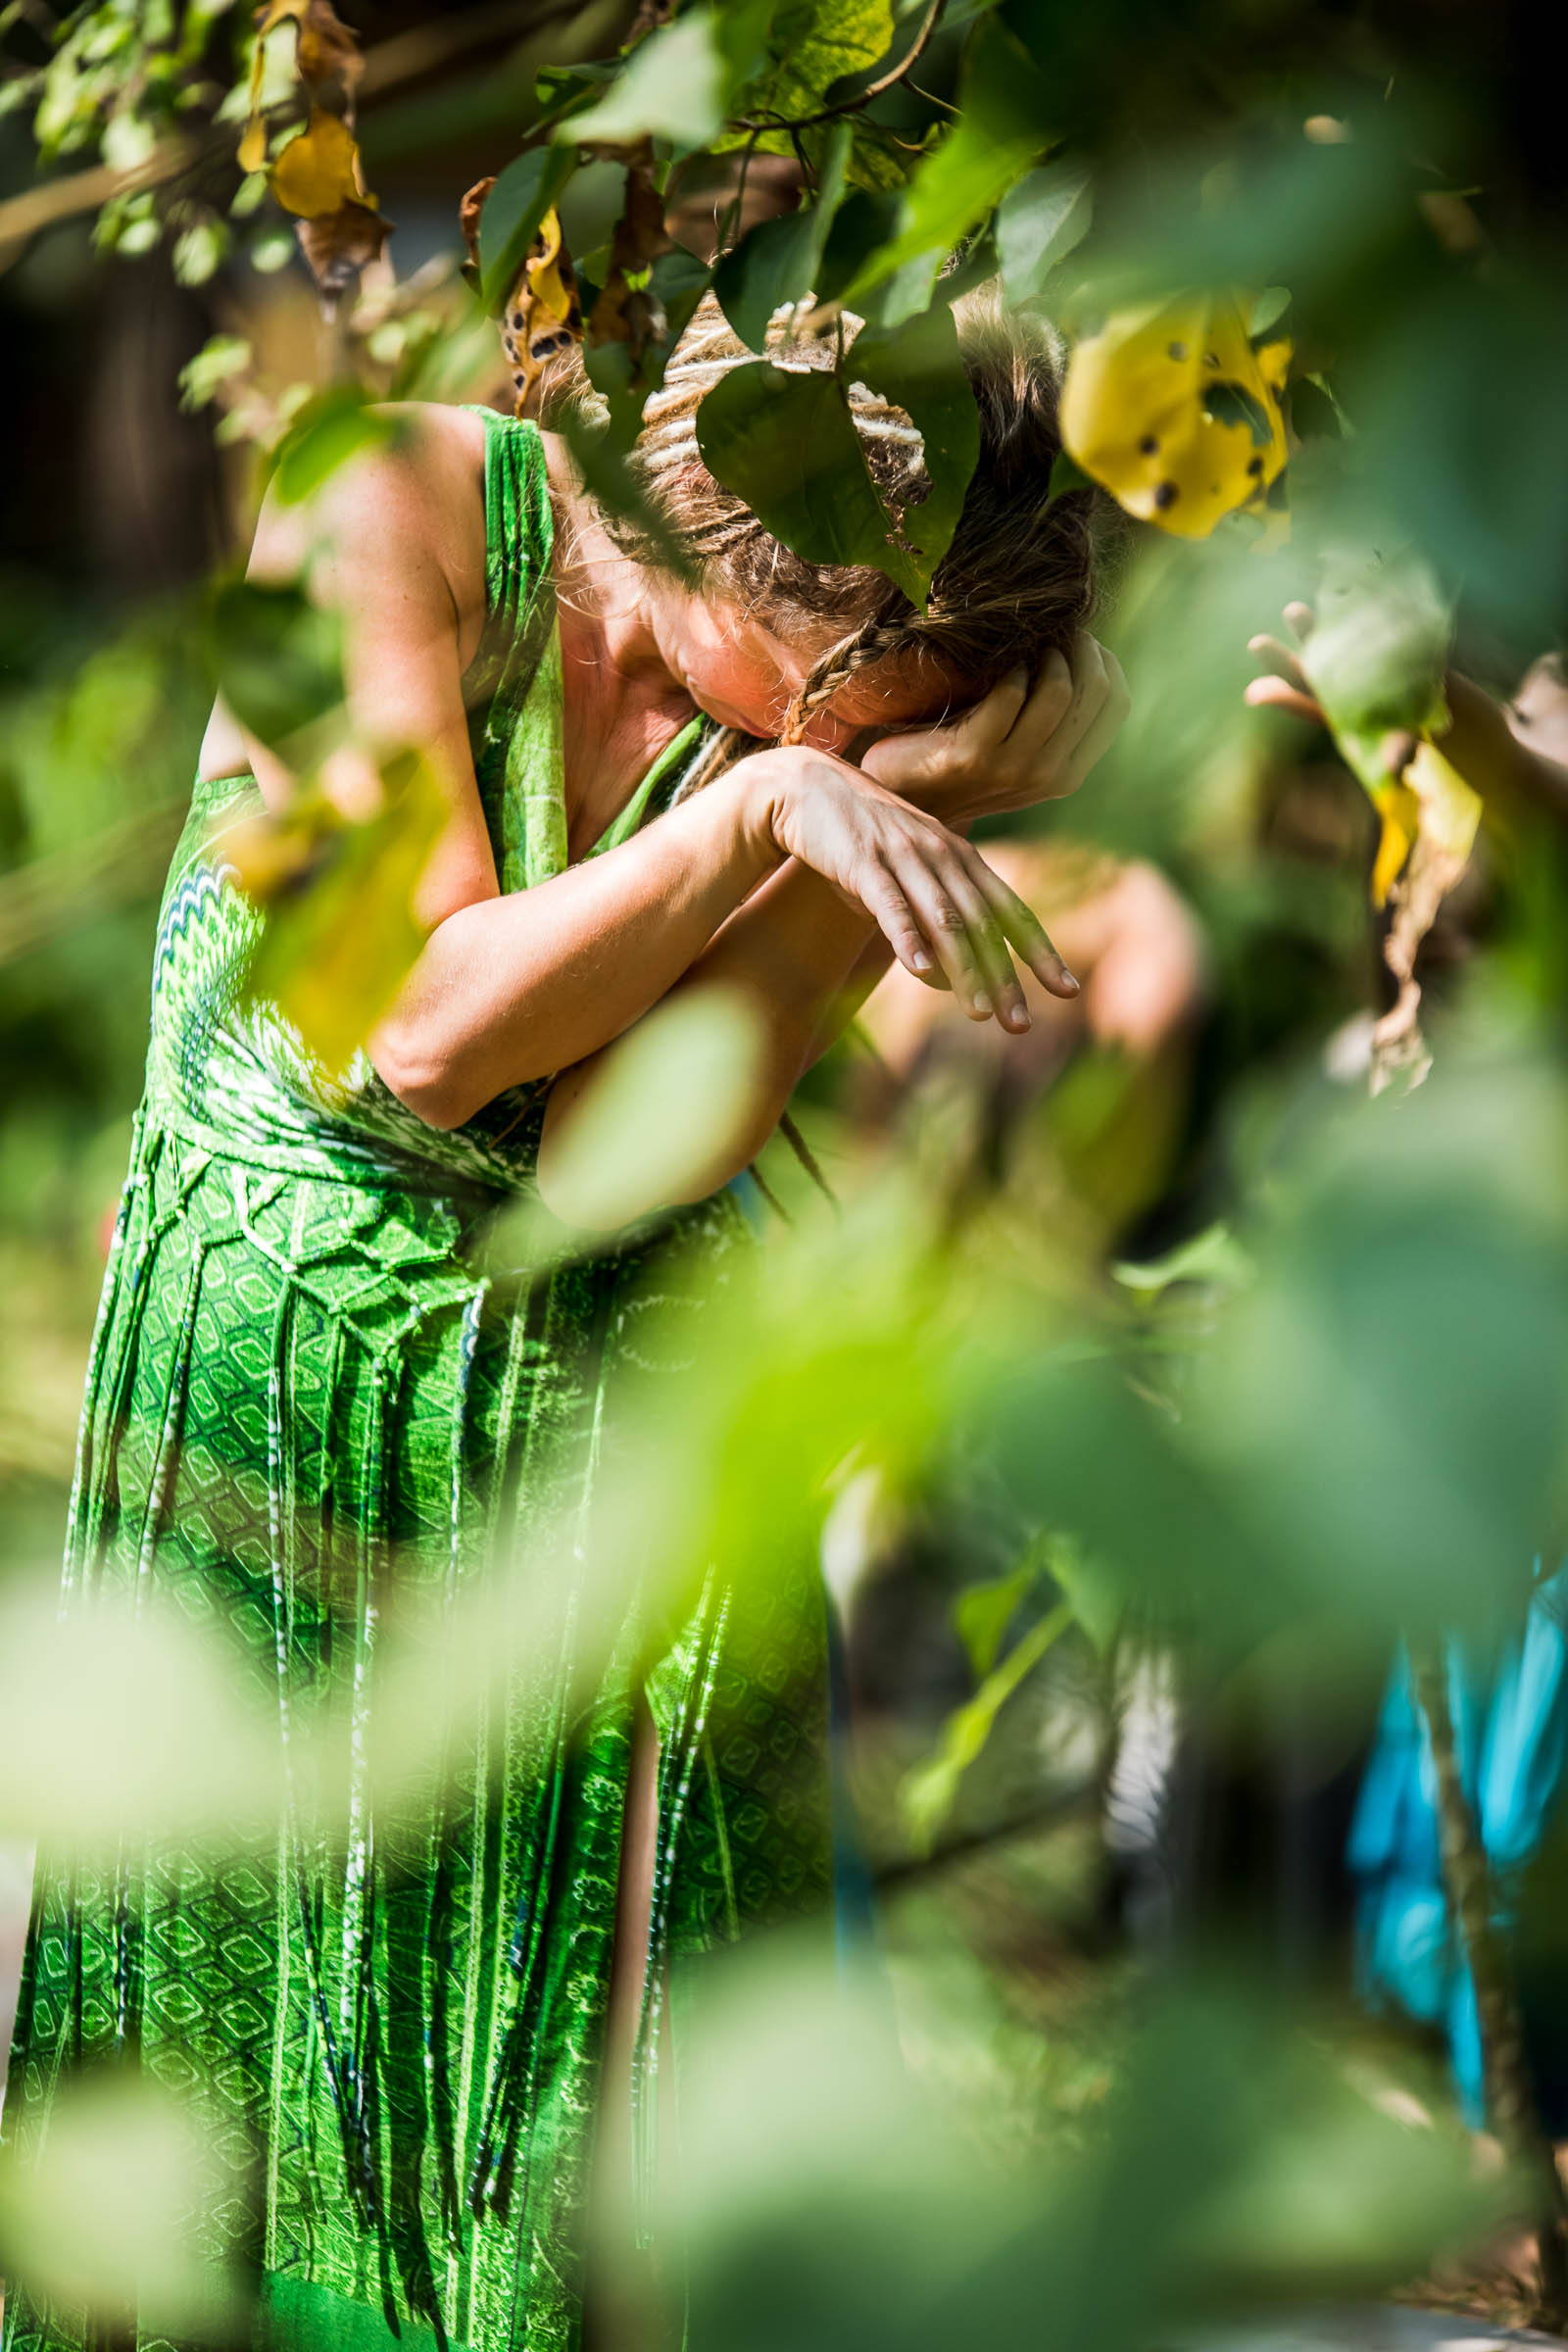 Outdoor Dance Portrait captured during Women retreat in India by Magdalena Smolarska Photography